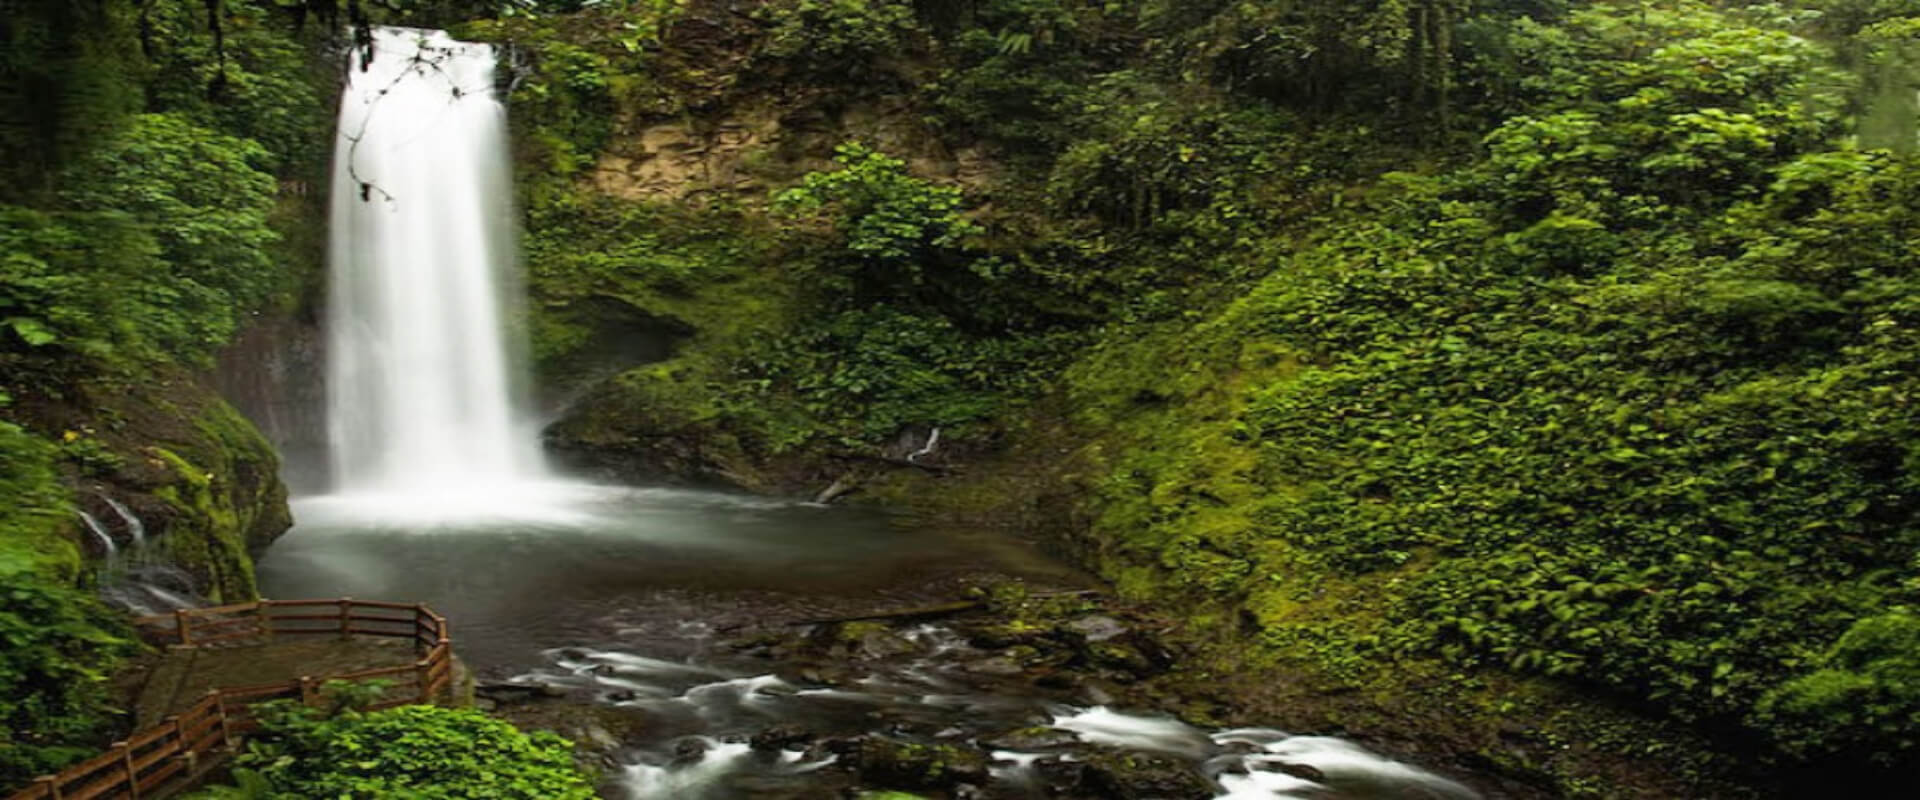 Combo Tour: Poás Volcano National Park / Doka Coffee Tour / La Paz Waterfall Garden | Costa Rica Jade Tours